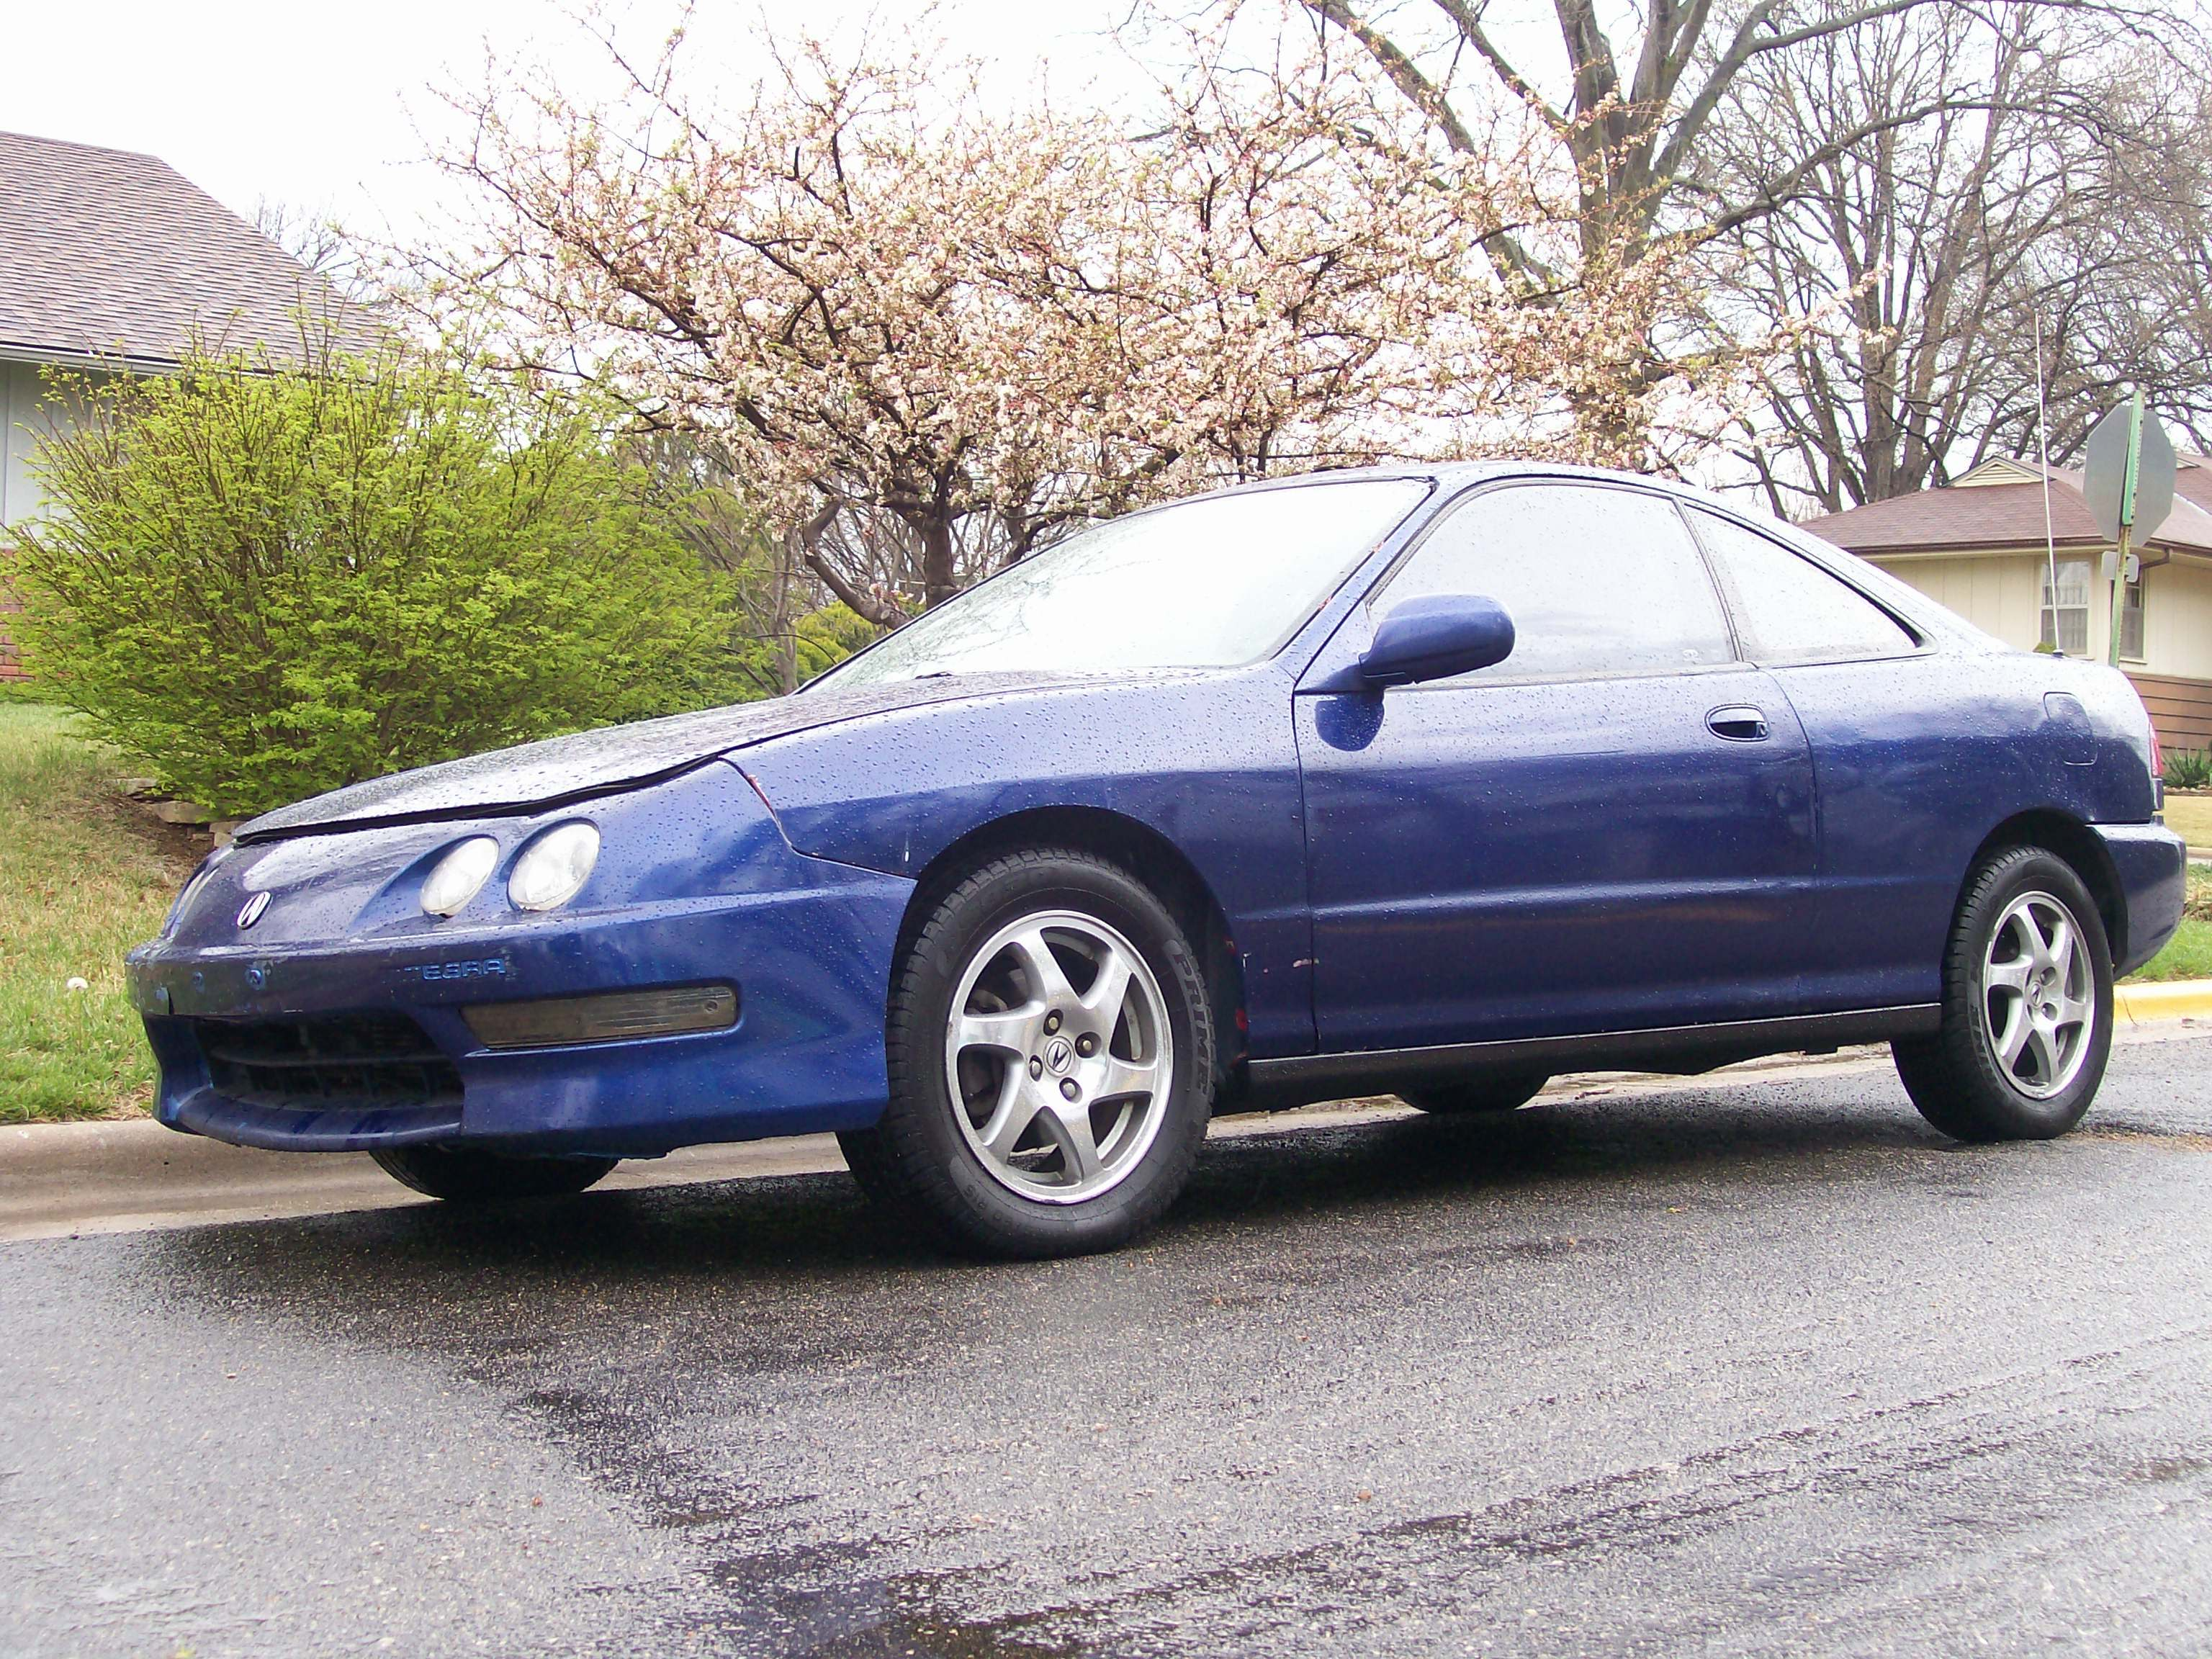 91-DX 1996 Acura Integra